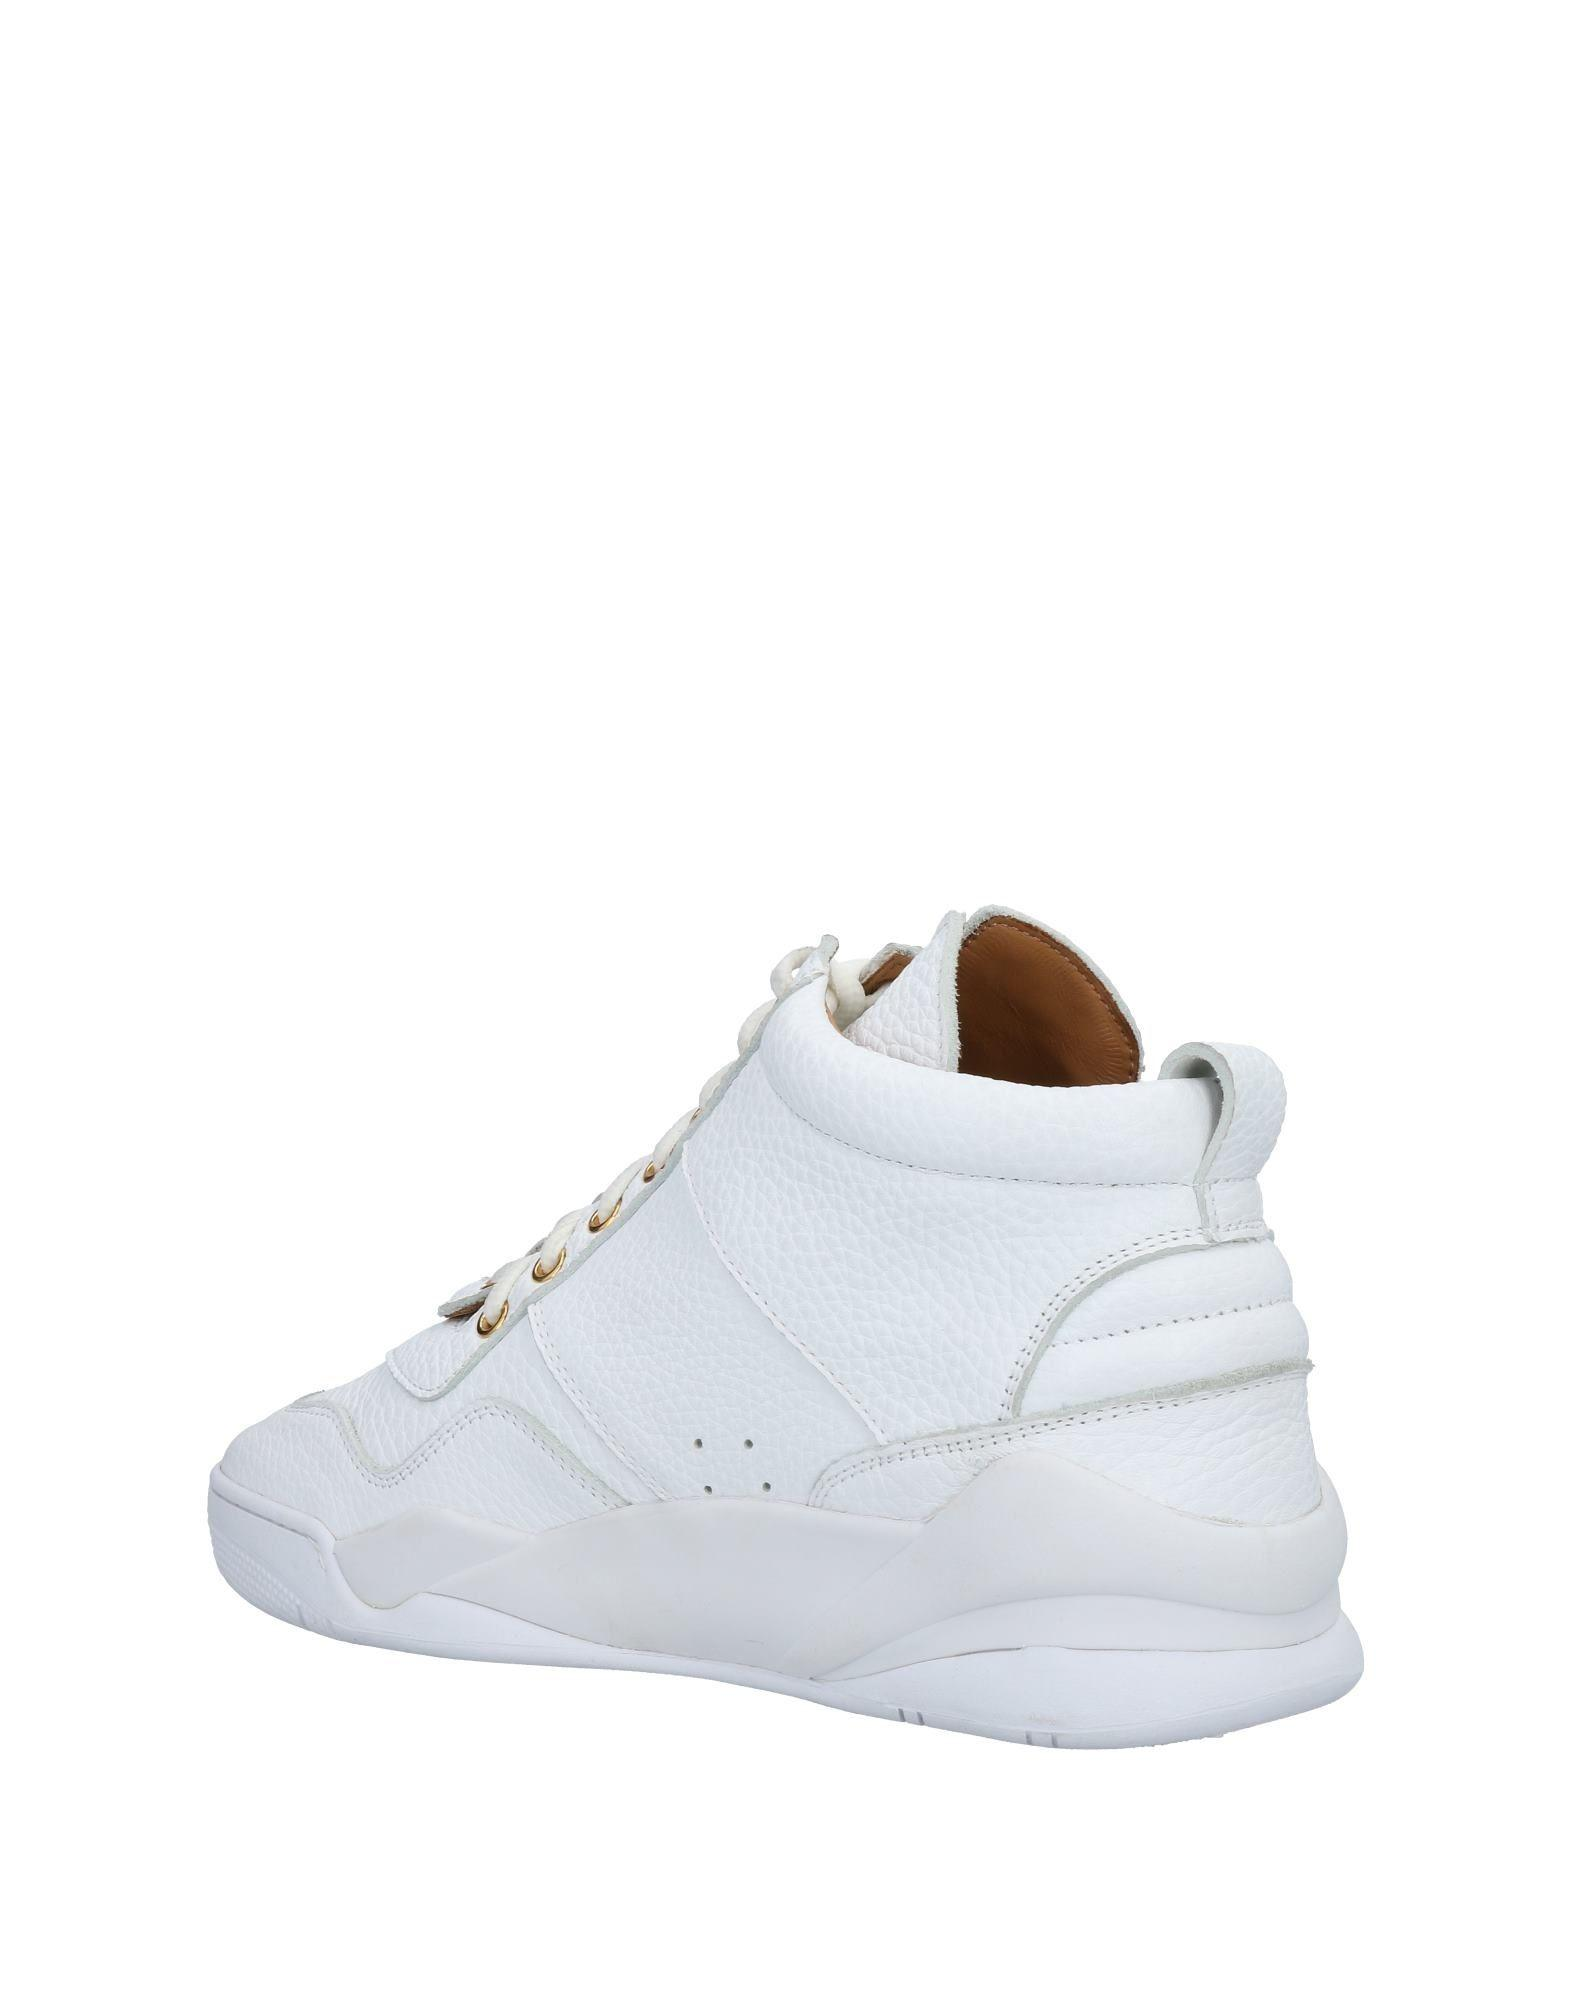 415c1d9d3b0cc Champion High-tops   Sneakers in White for Men - Lyst